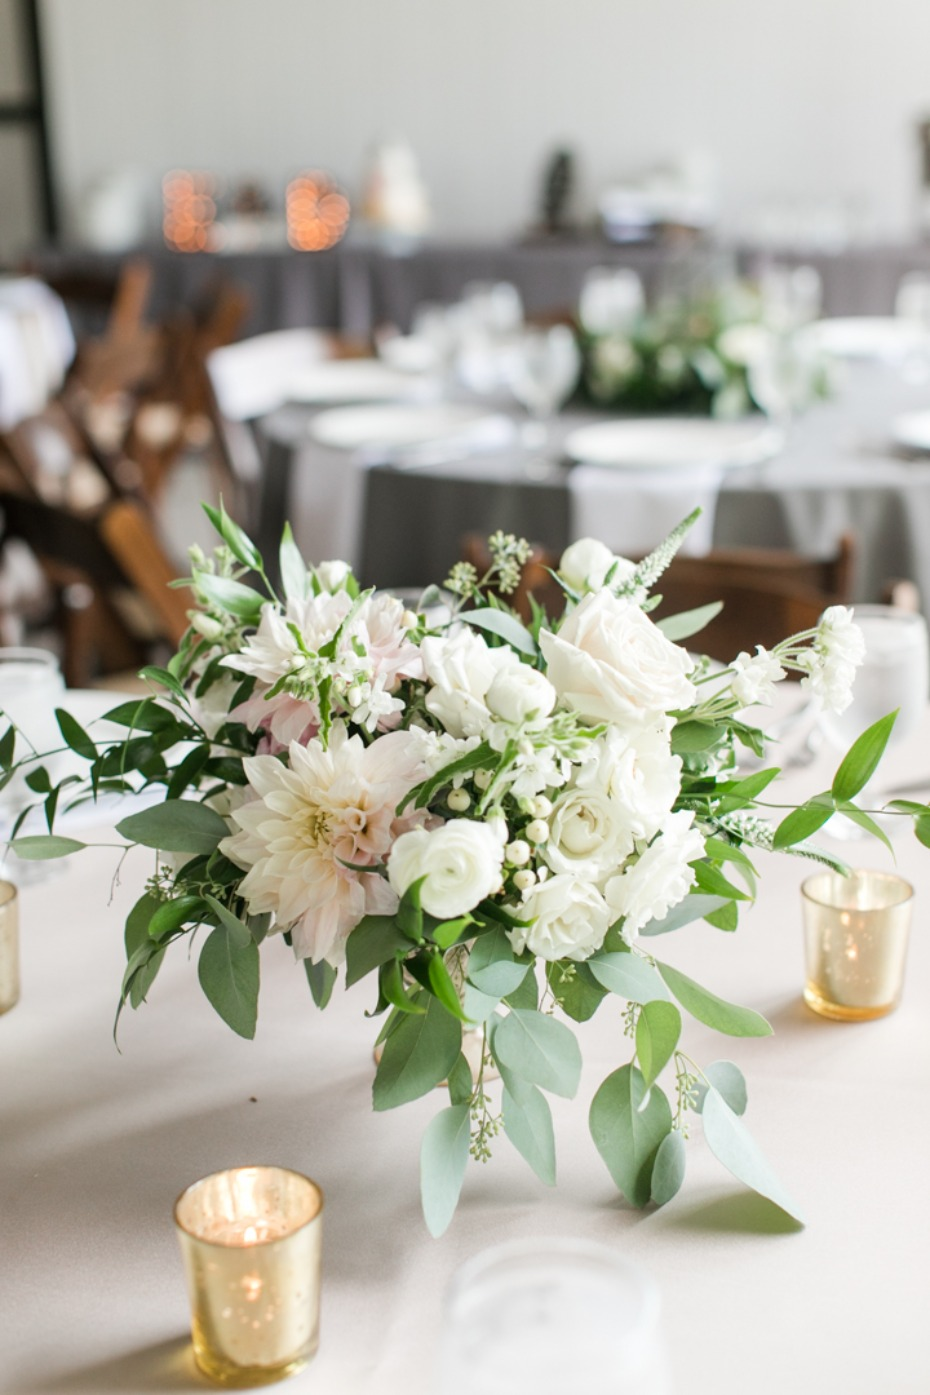 White floral centerpiece with candles